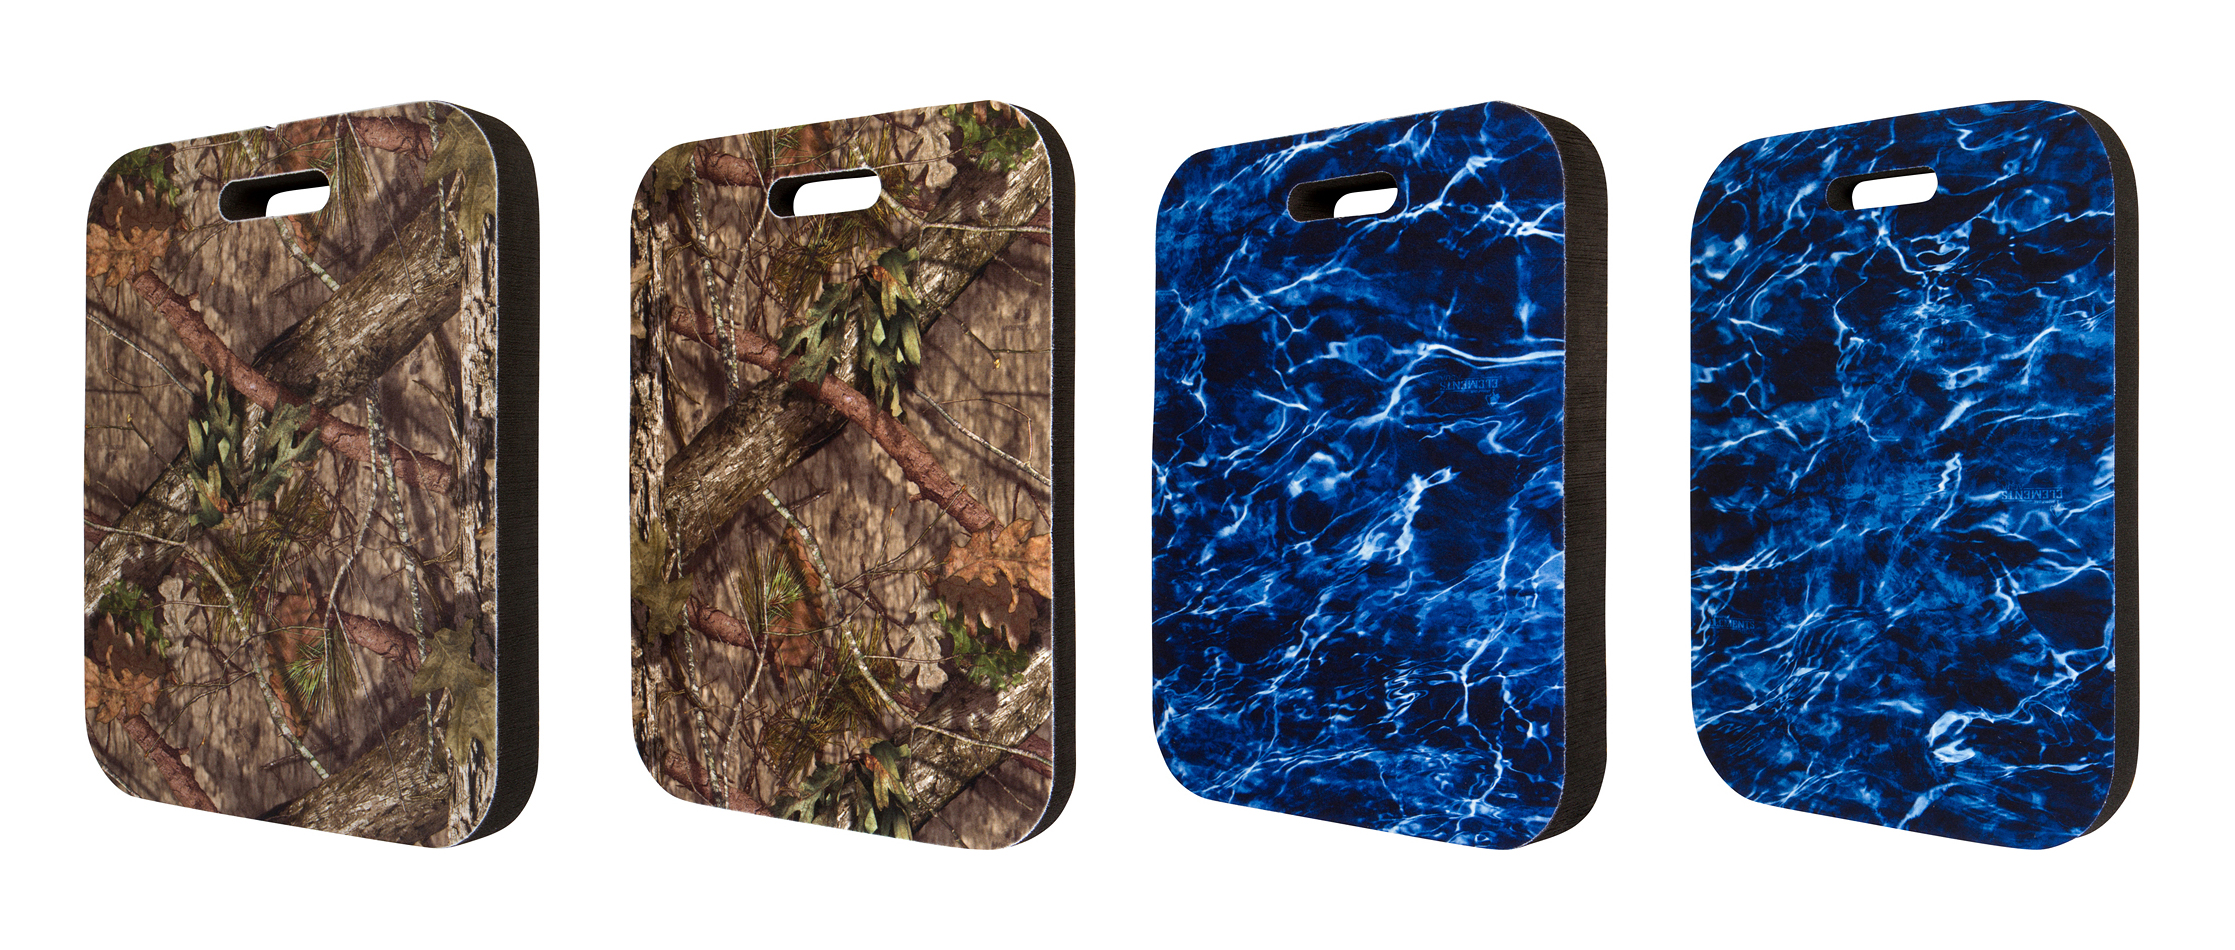 Eco-Friendly Earth Edge Pads Now Available in Mossy Oak Patterns